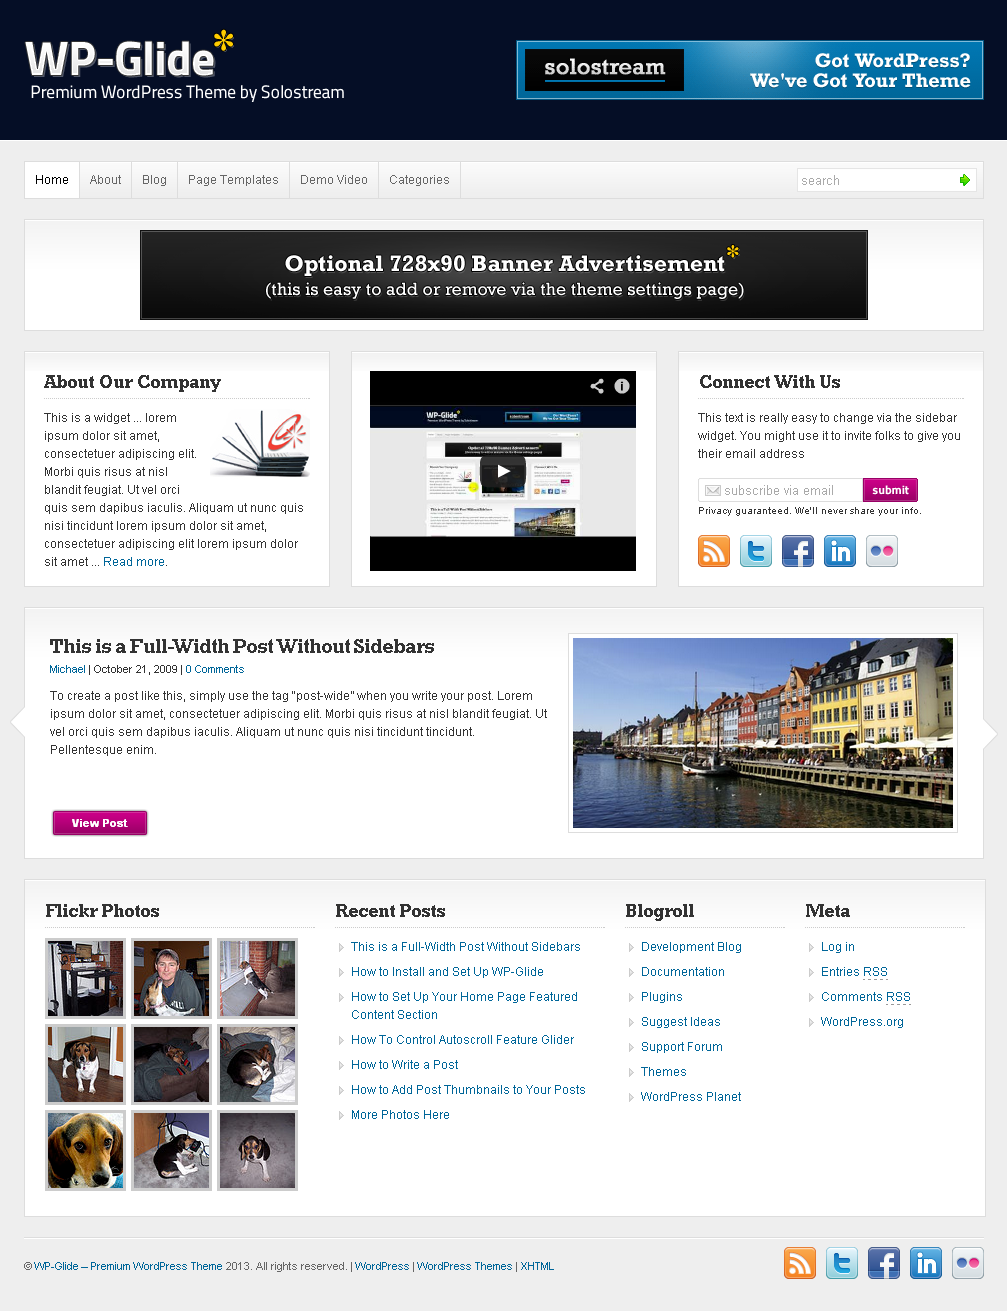 WP Glide – Premium WordPress Theme